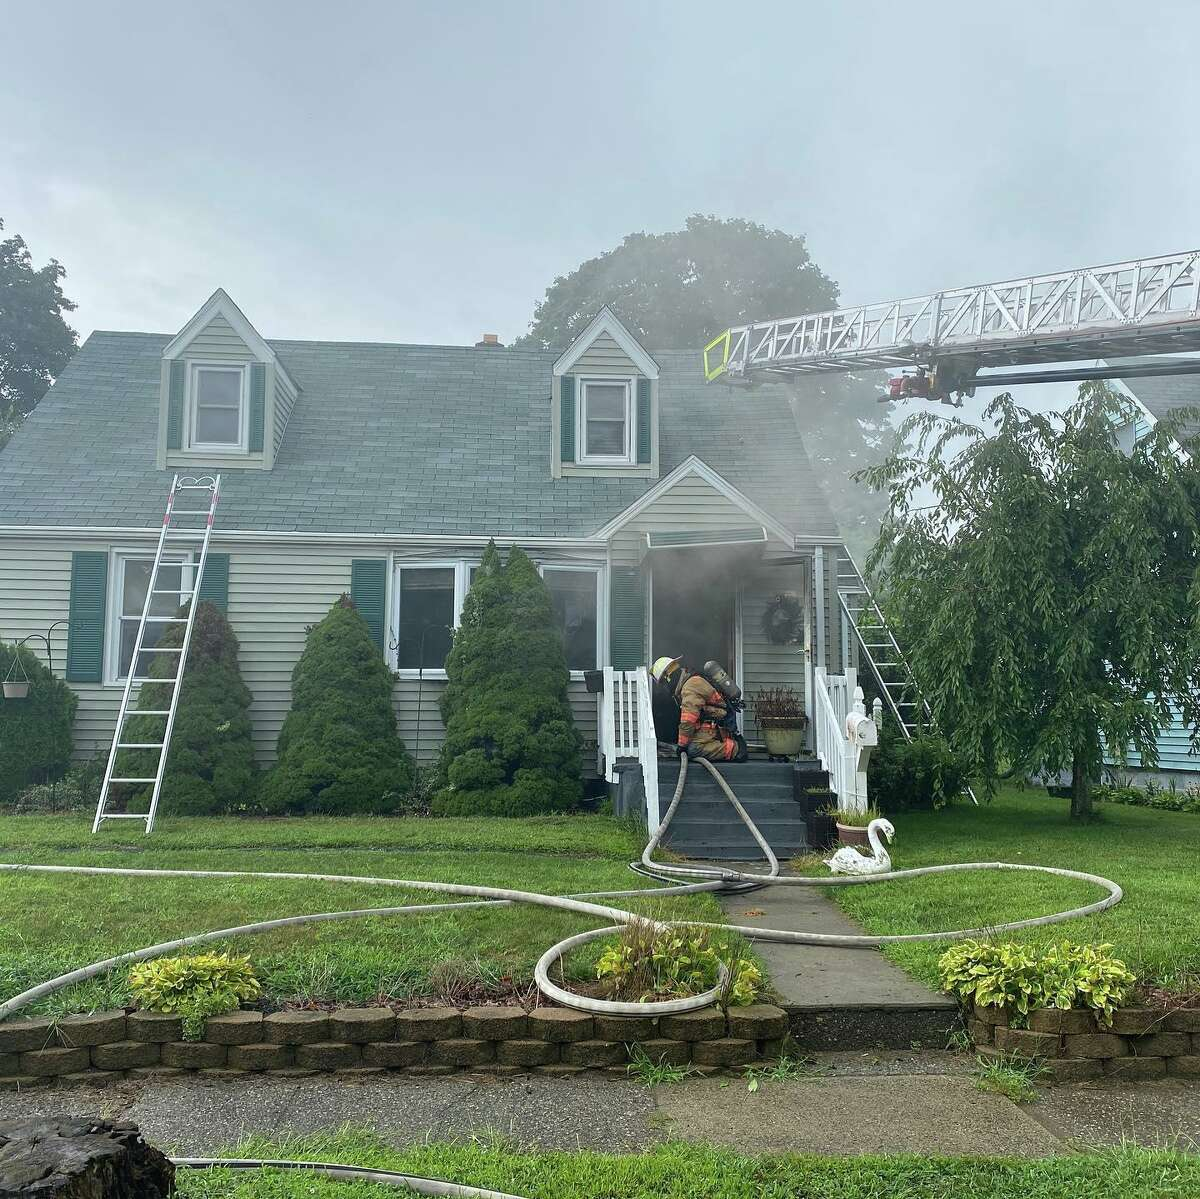 Milford firefighers work to put out a fire at a home on Alden Place Monday, Aug. 23, 2021.